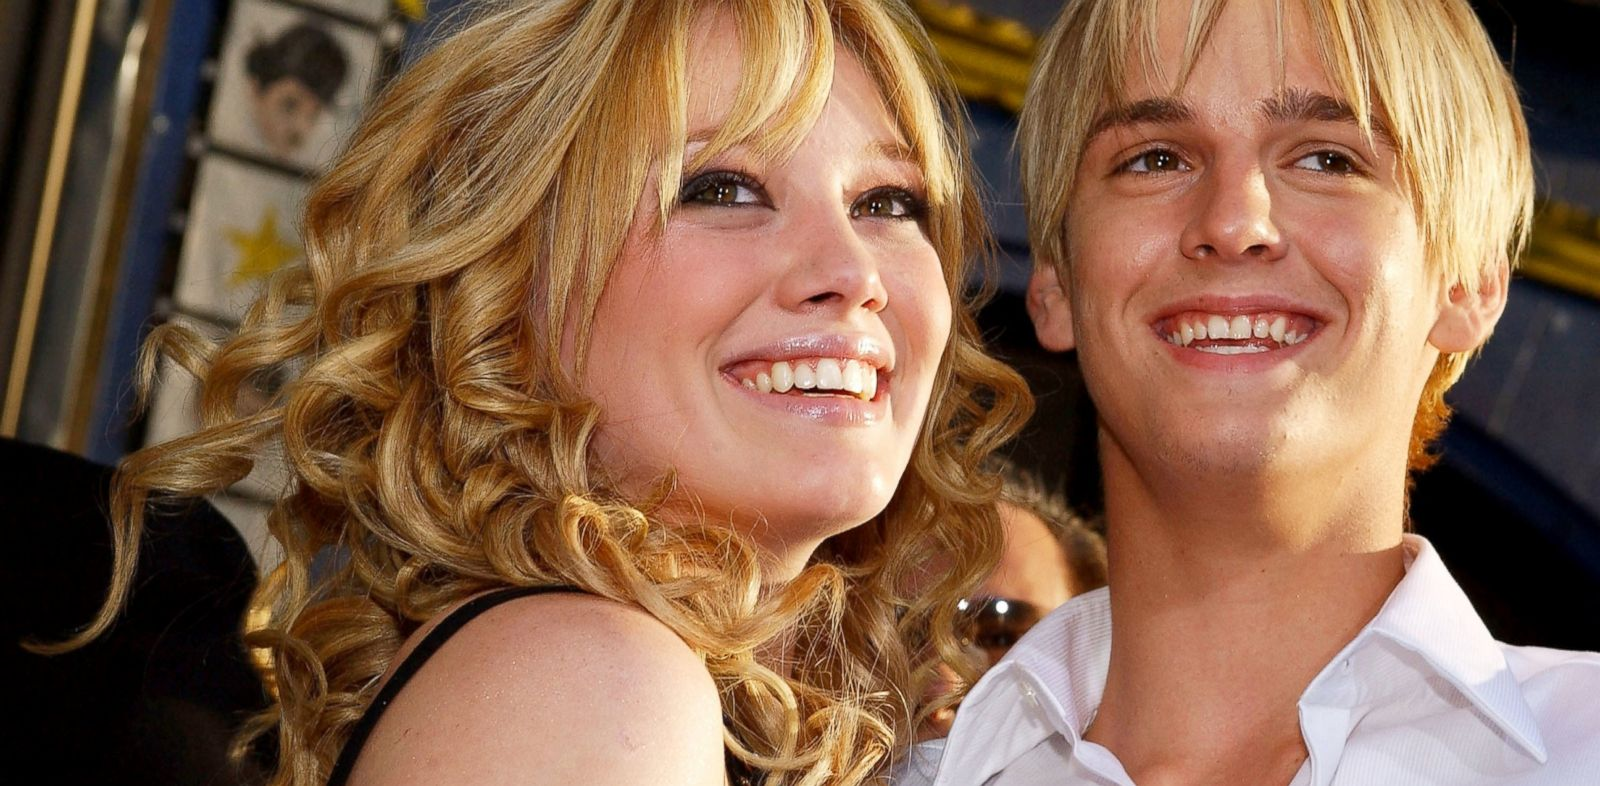 PHOTO: Hilary Duff hugs Aaron Carter as they attend the premiere of The Lizzie McGuire Movie, April 26, 2003, in Hollywood, Calif.